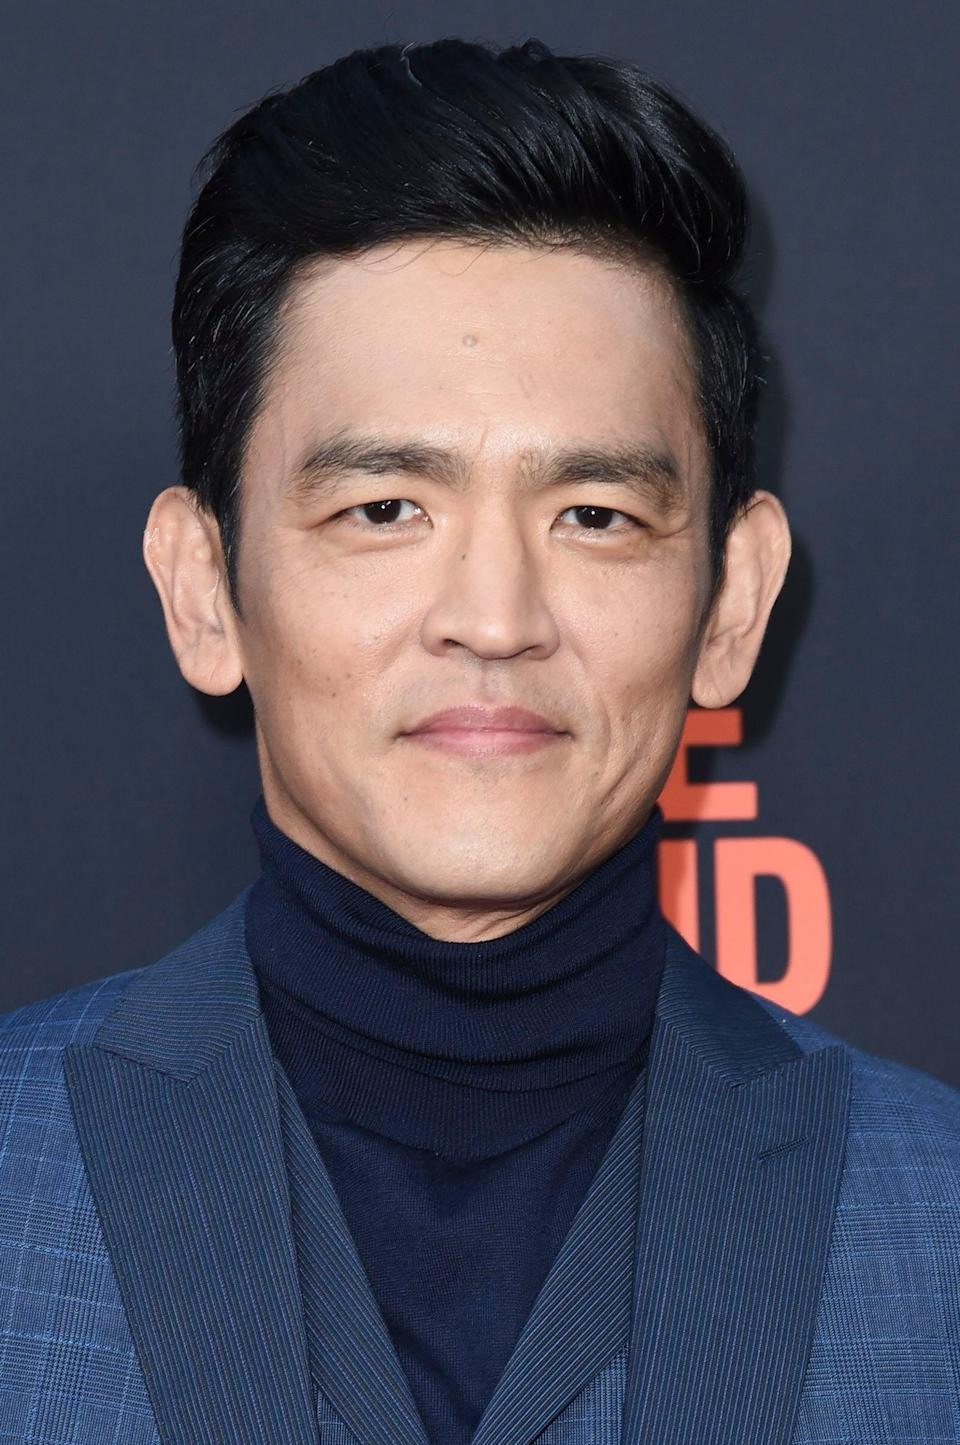 """<p><strong><em>Tigertail</em></strong><br>TBA</p><p>Alan Yang wrote, directed, and produced this movie, which is <a href=""""https://variety.com/2018/film/news/john-cho-alan-yang-tigertail-netflix-1202915839/"""" rel=""""nofollow noopener"""" target=""""_blank"""" data-ylk=""""slk:based on his own family's experiences"""" class=""""link rapid-noclick-resp"""">based on his own family's experiences</a> emigrating from Taiwan to the U.S. John Cho will star.</p><span class=""""copyright"""">Richard Shotwell/Invision/AP/REX/Shutterstock</span>"""